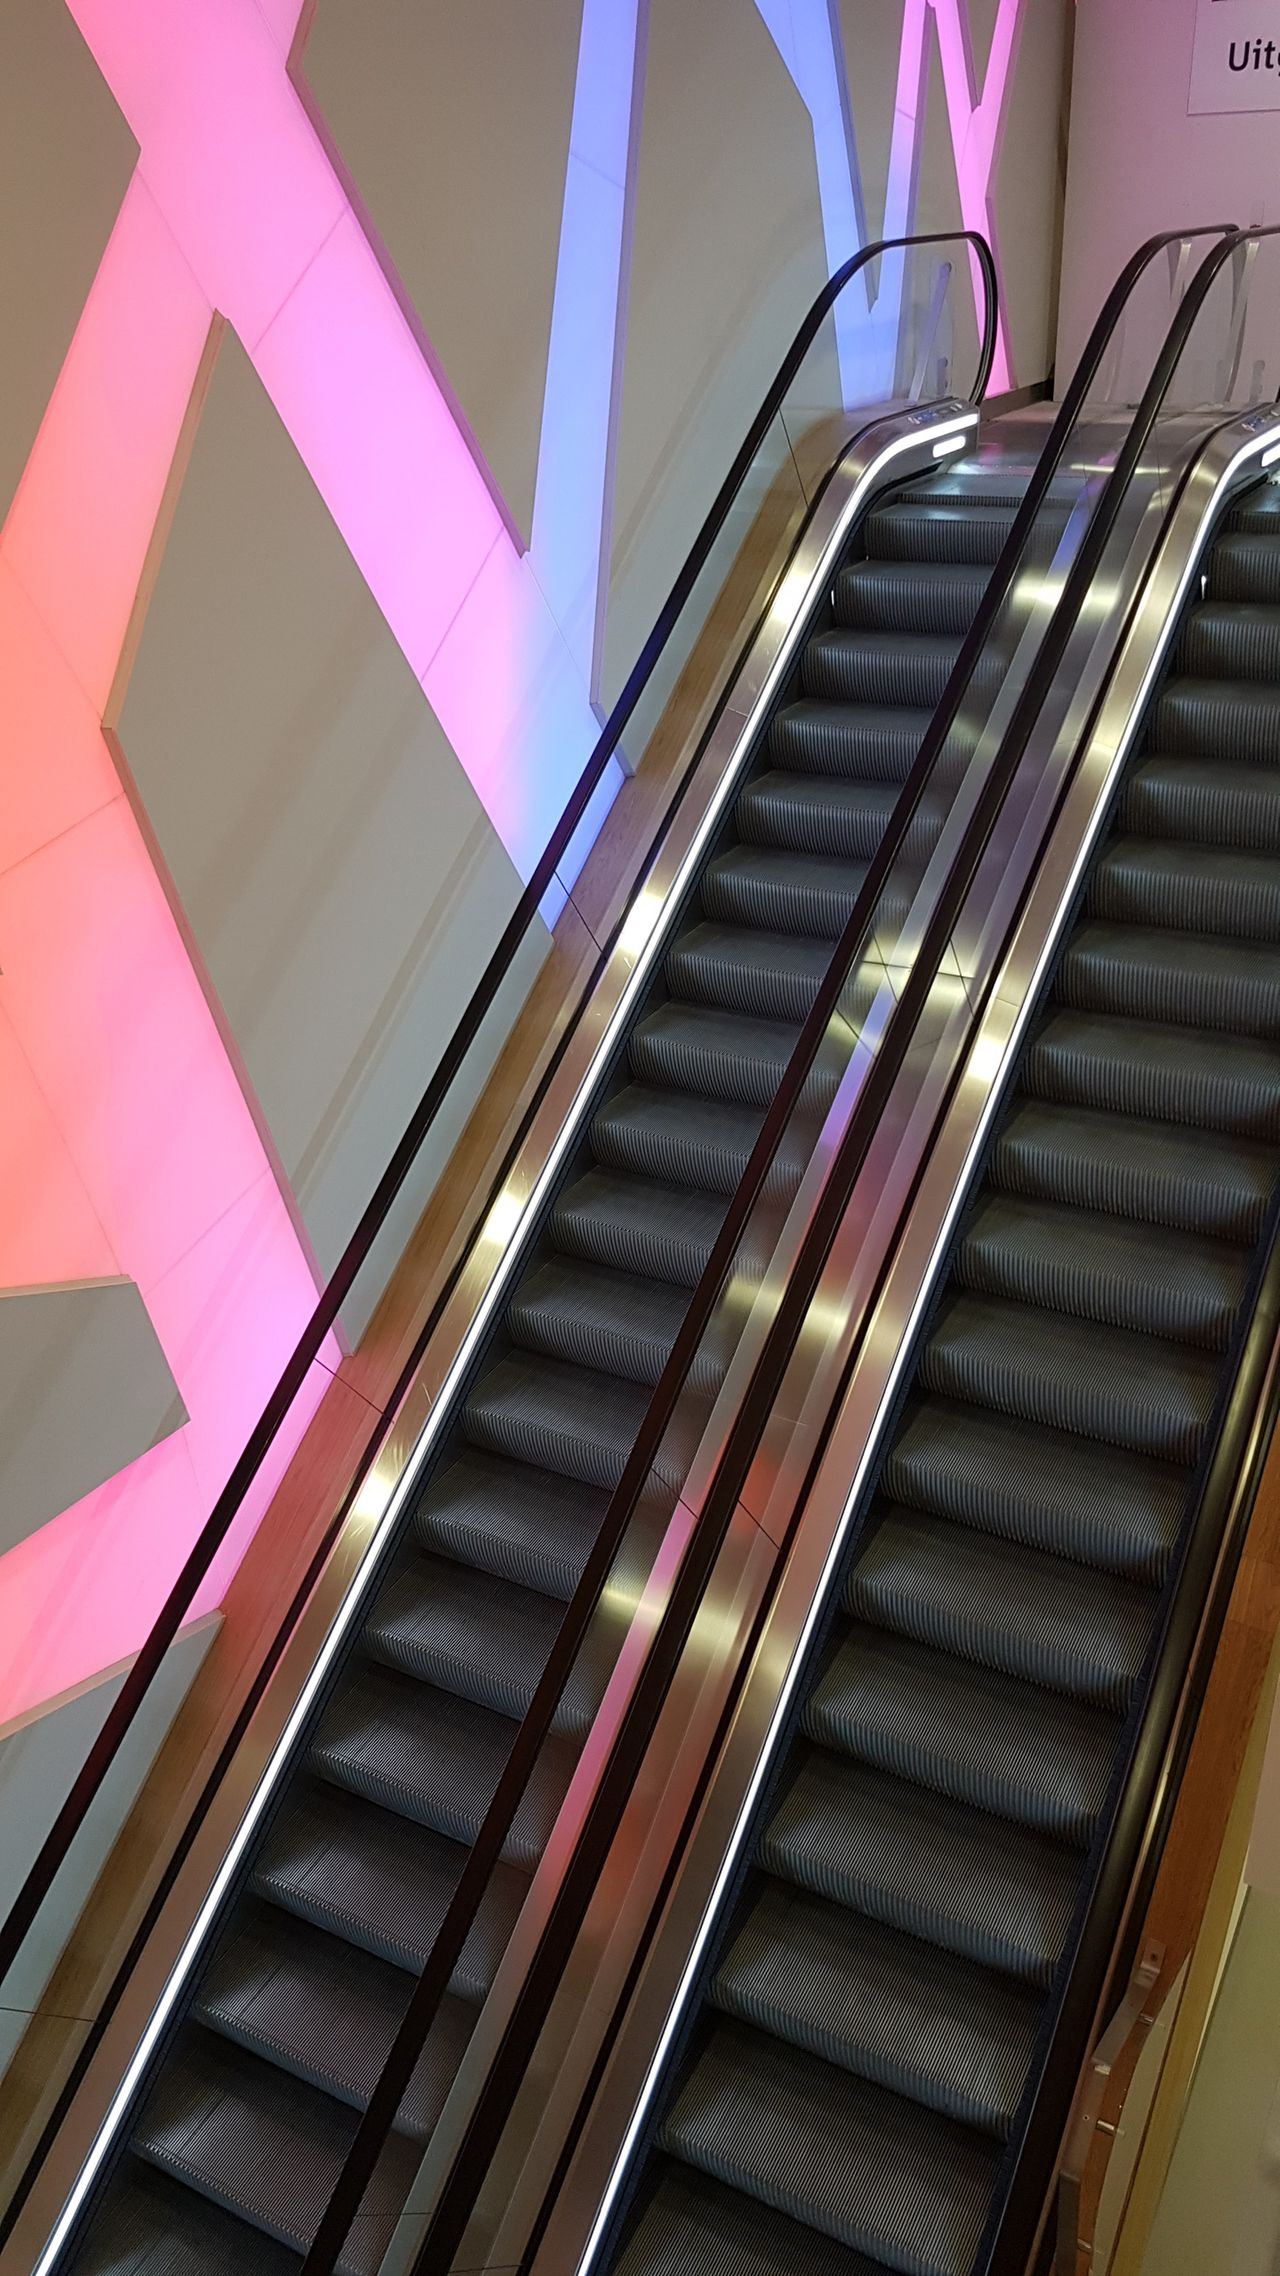 Architecture Built Structure Escalator Futuristic Indoors  No People Pink Color Purple Railing Shiny Staircase Steps Steps And Staircases Technology Up And Down